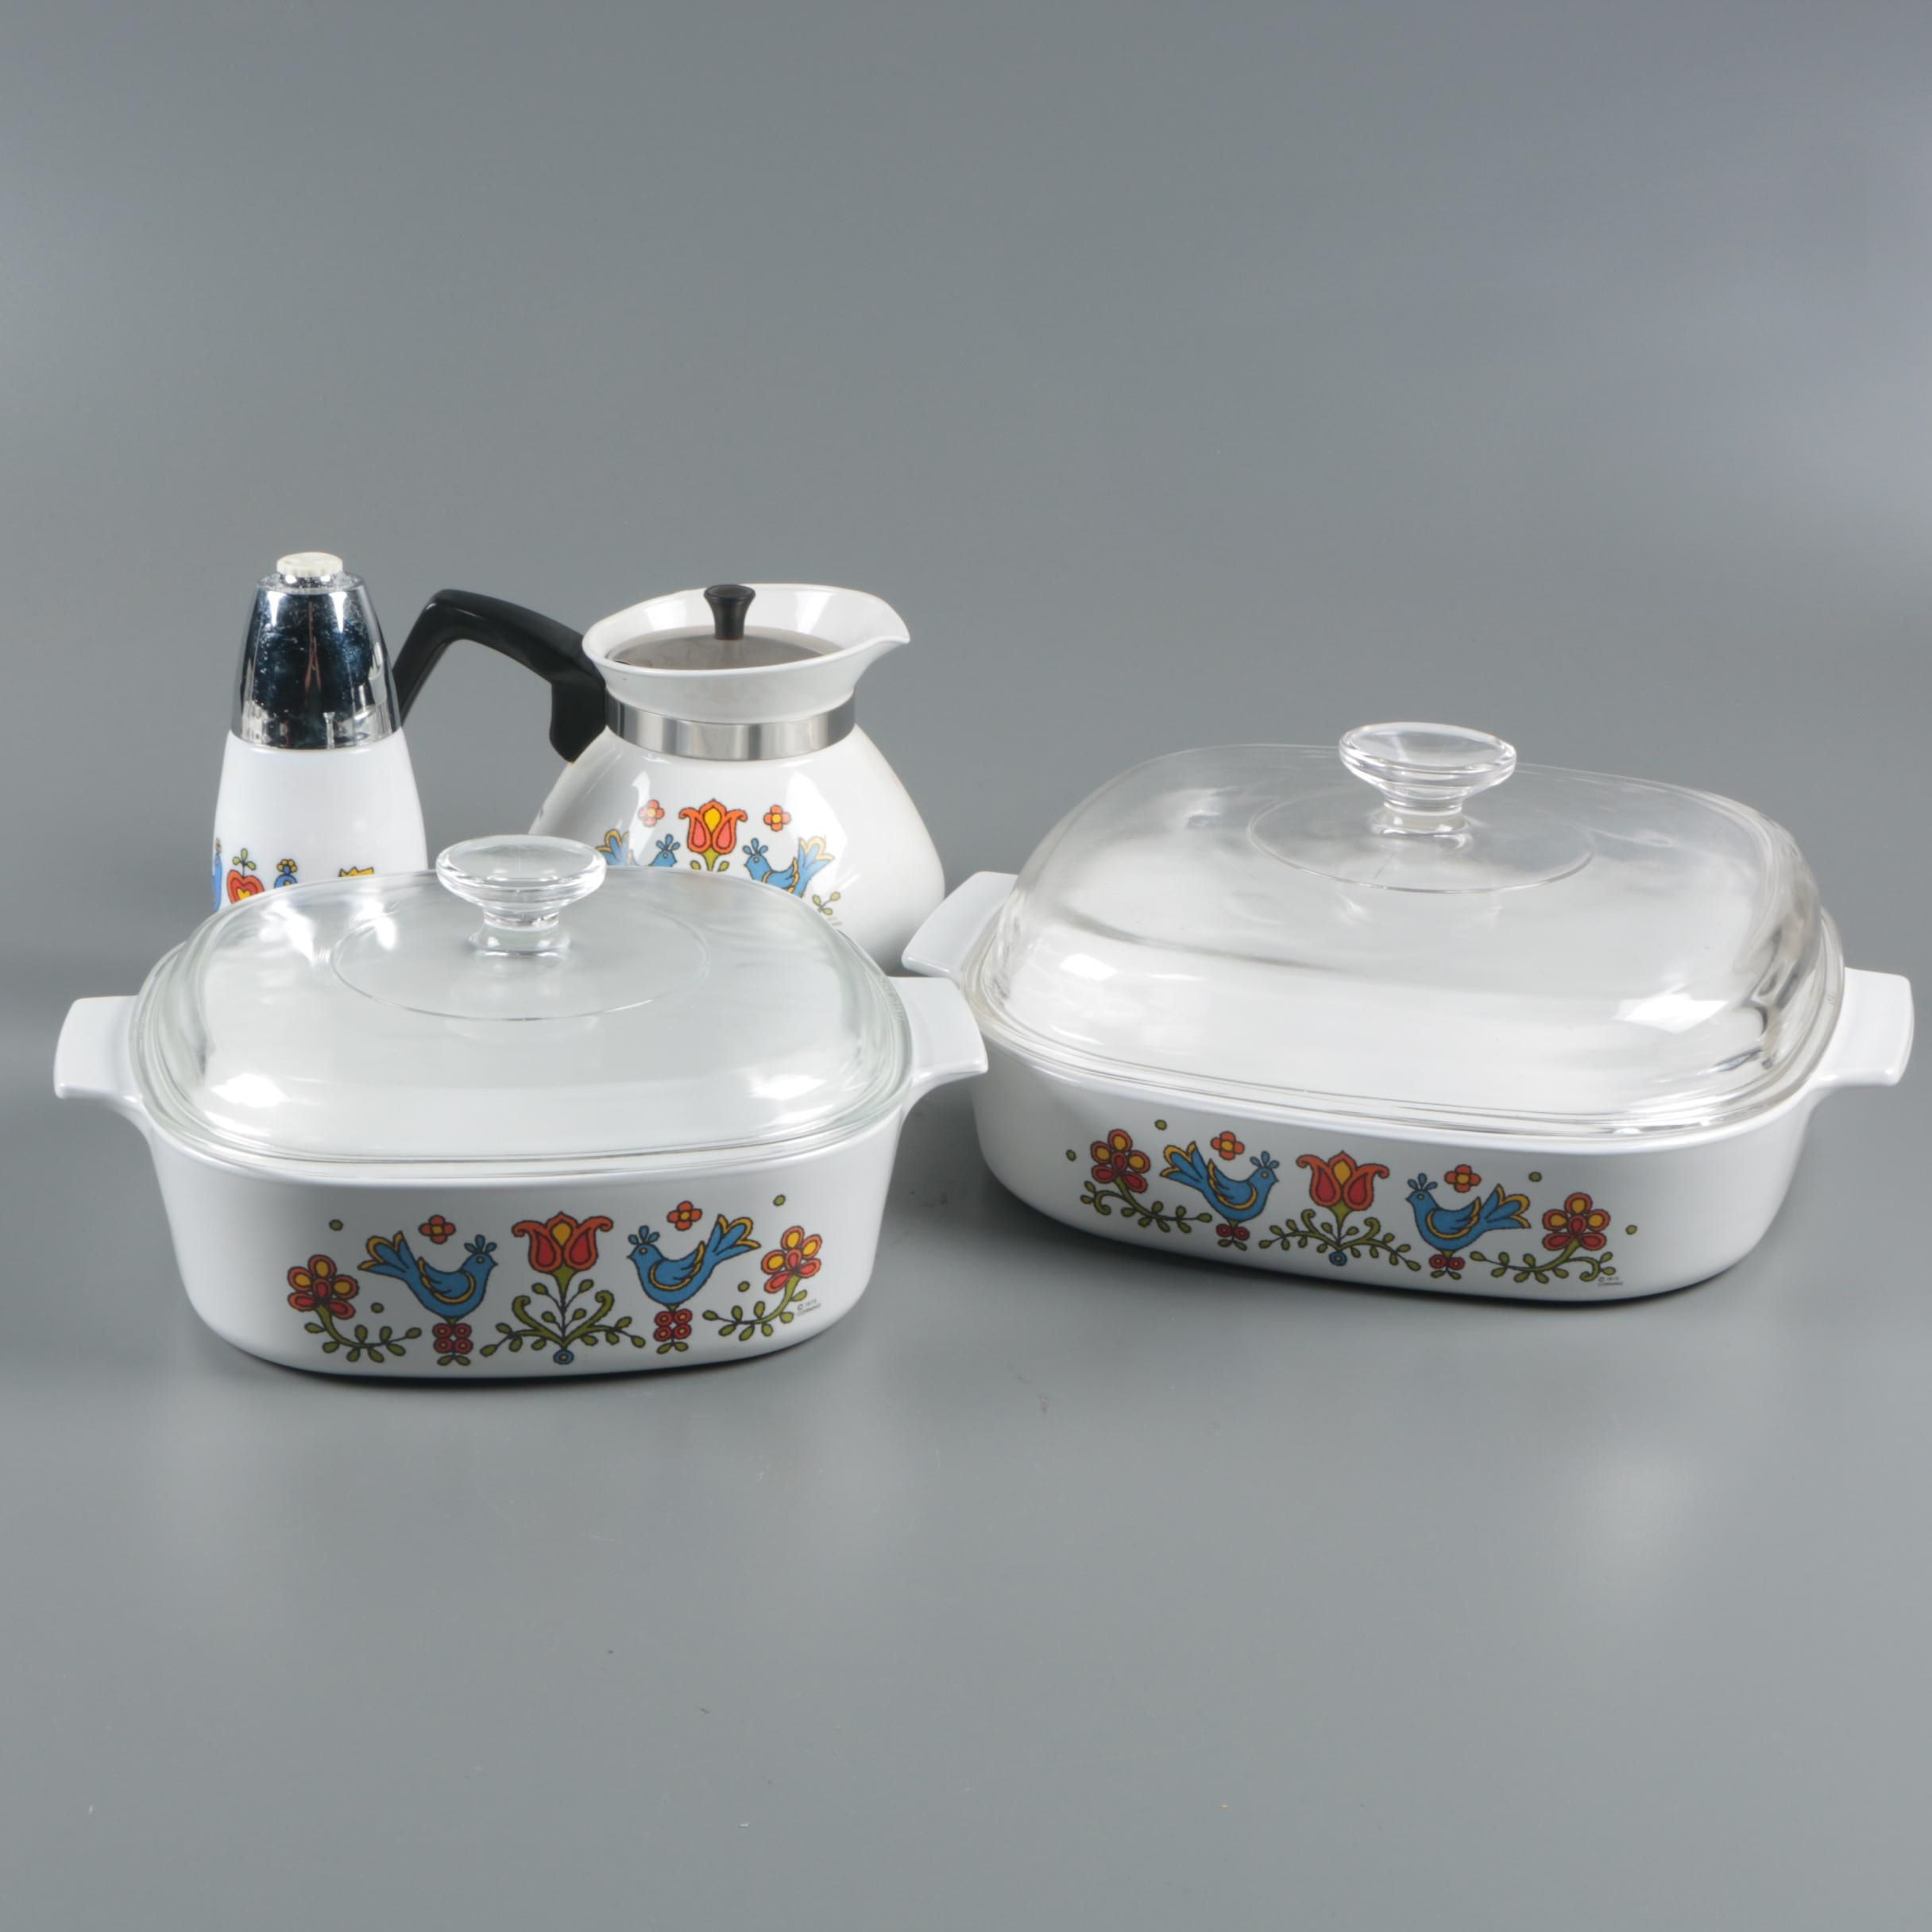 "Corning Ware ""Country Festival"" Casseroles and Coffee Pot with Gemco Shaker"